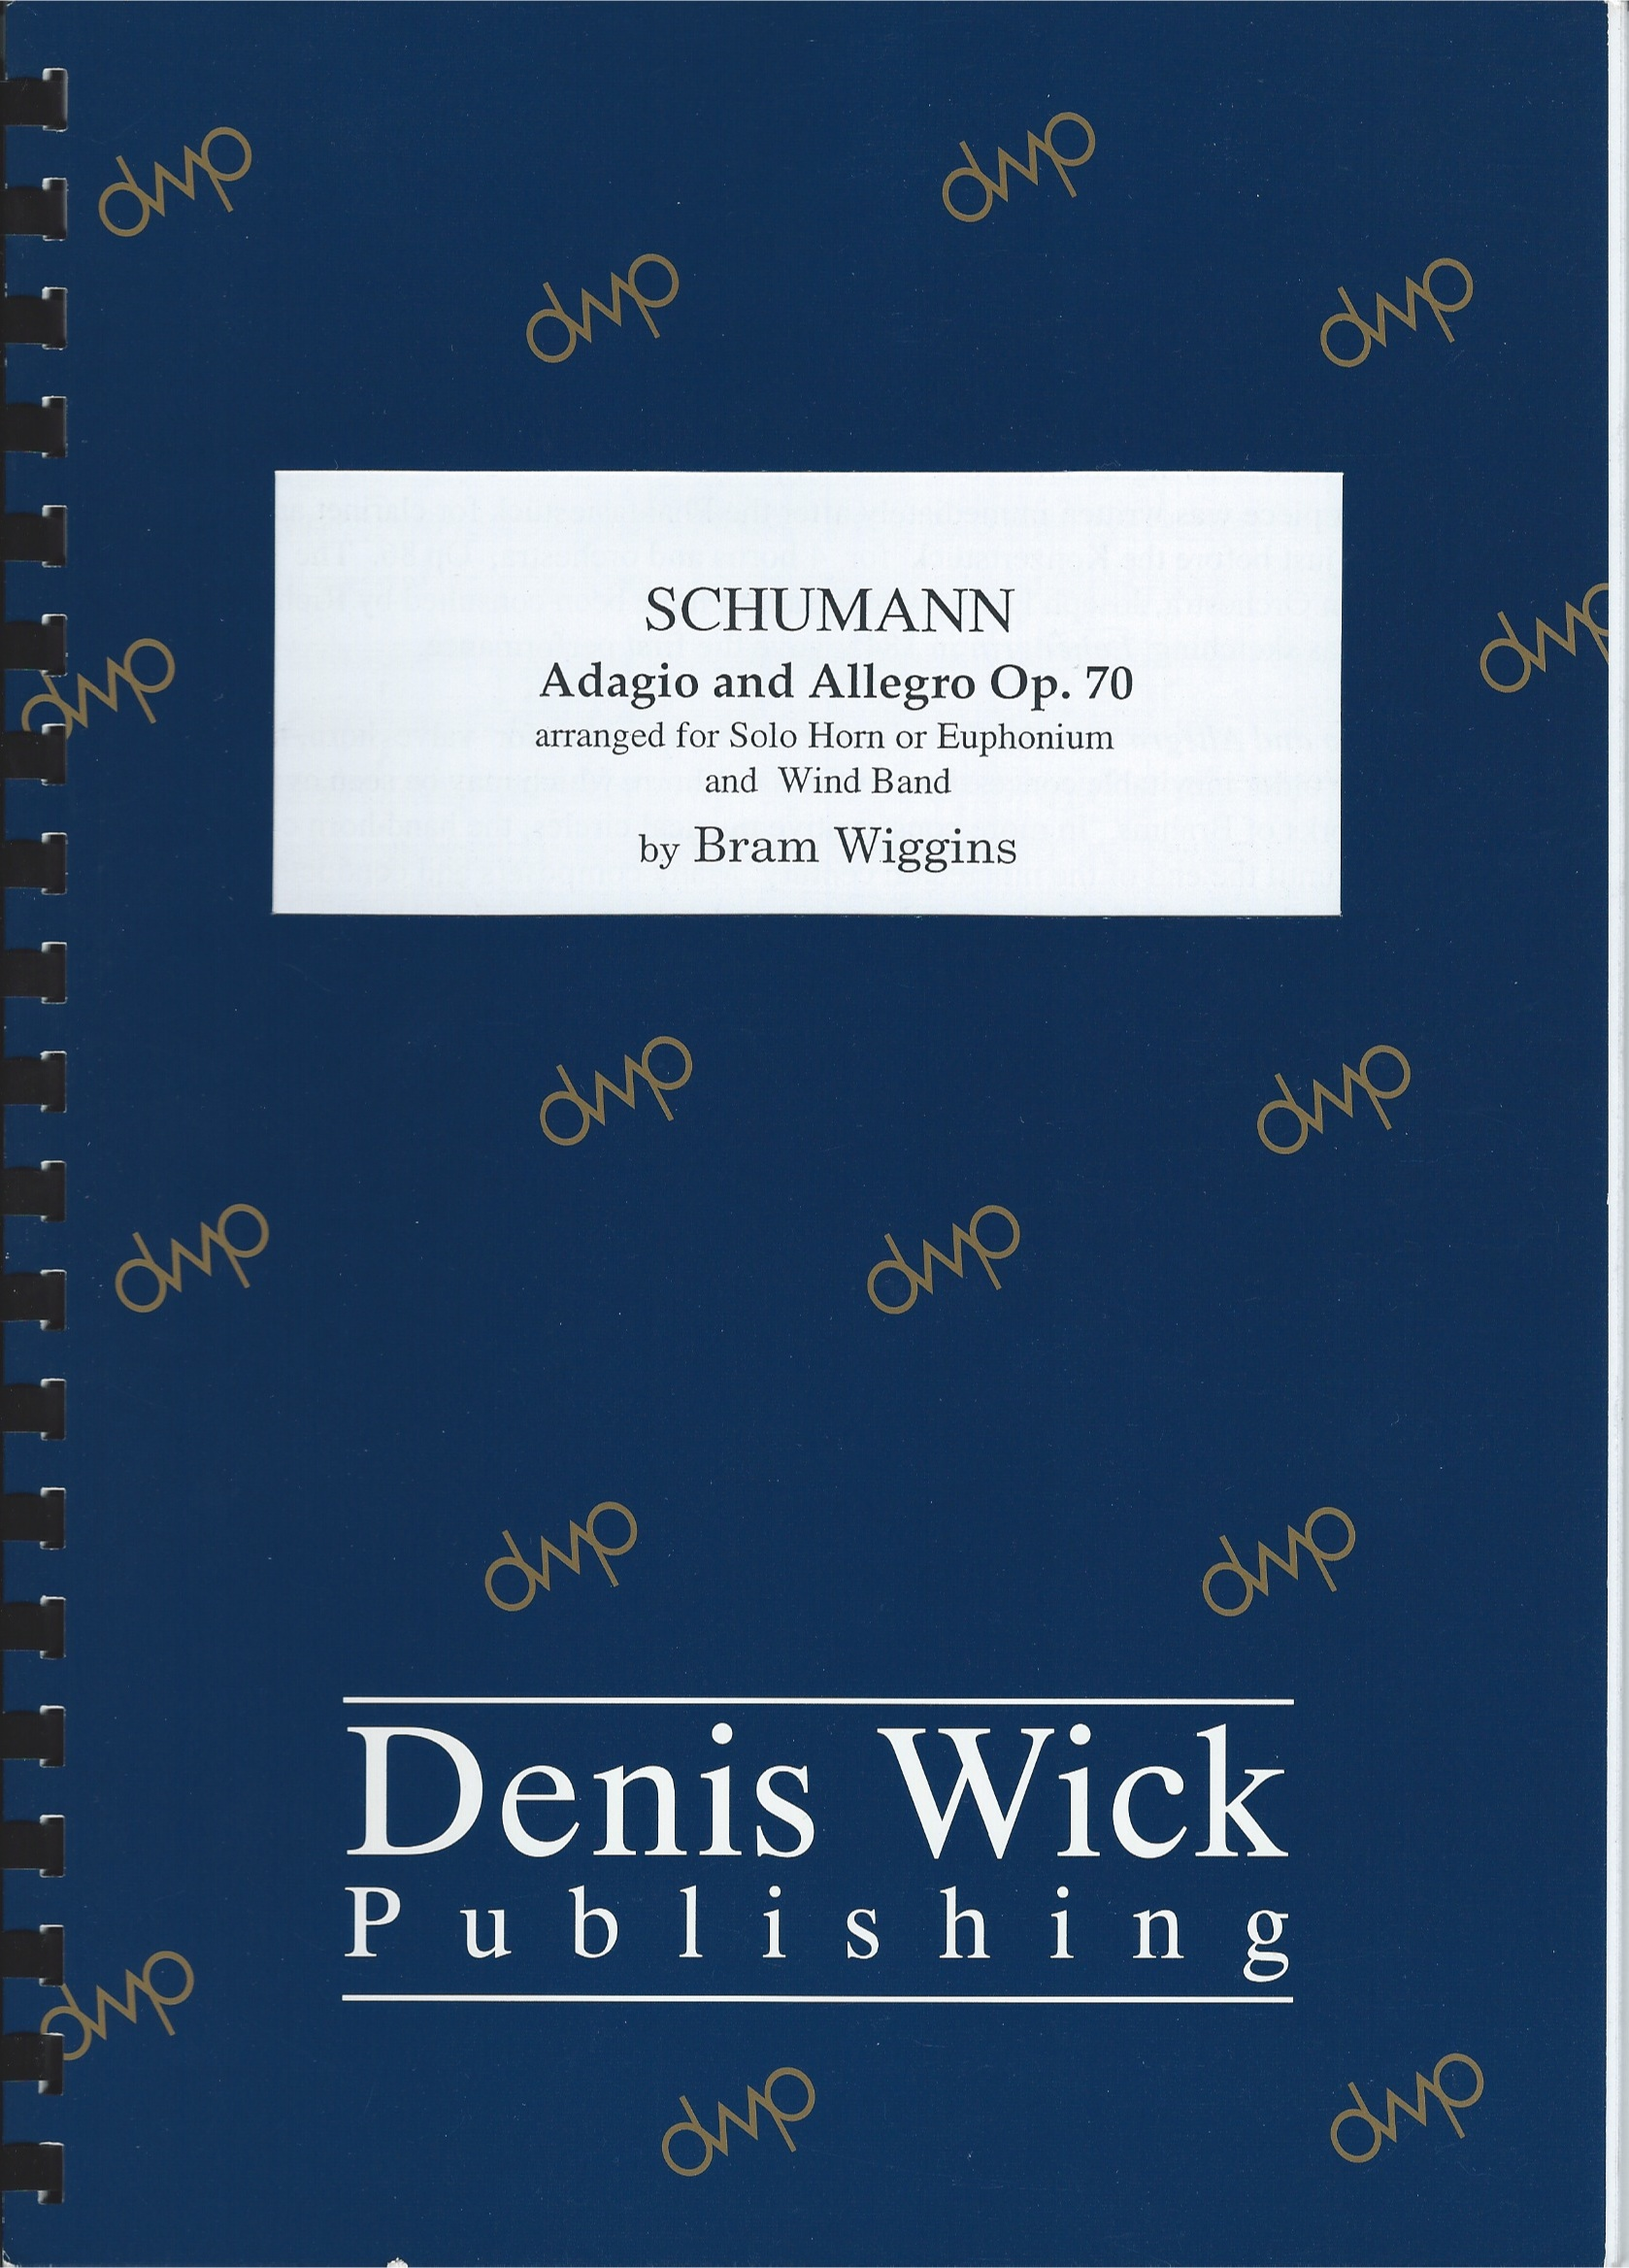 Adagio and Allegro Op.70 (Schumman Arr.Bram wiggins) for Solo horn or Euphonium and Wind Orchestra